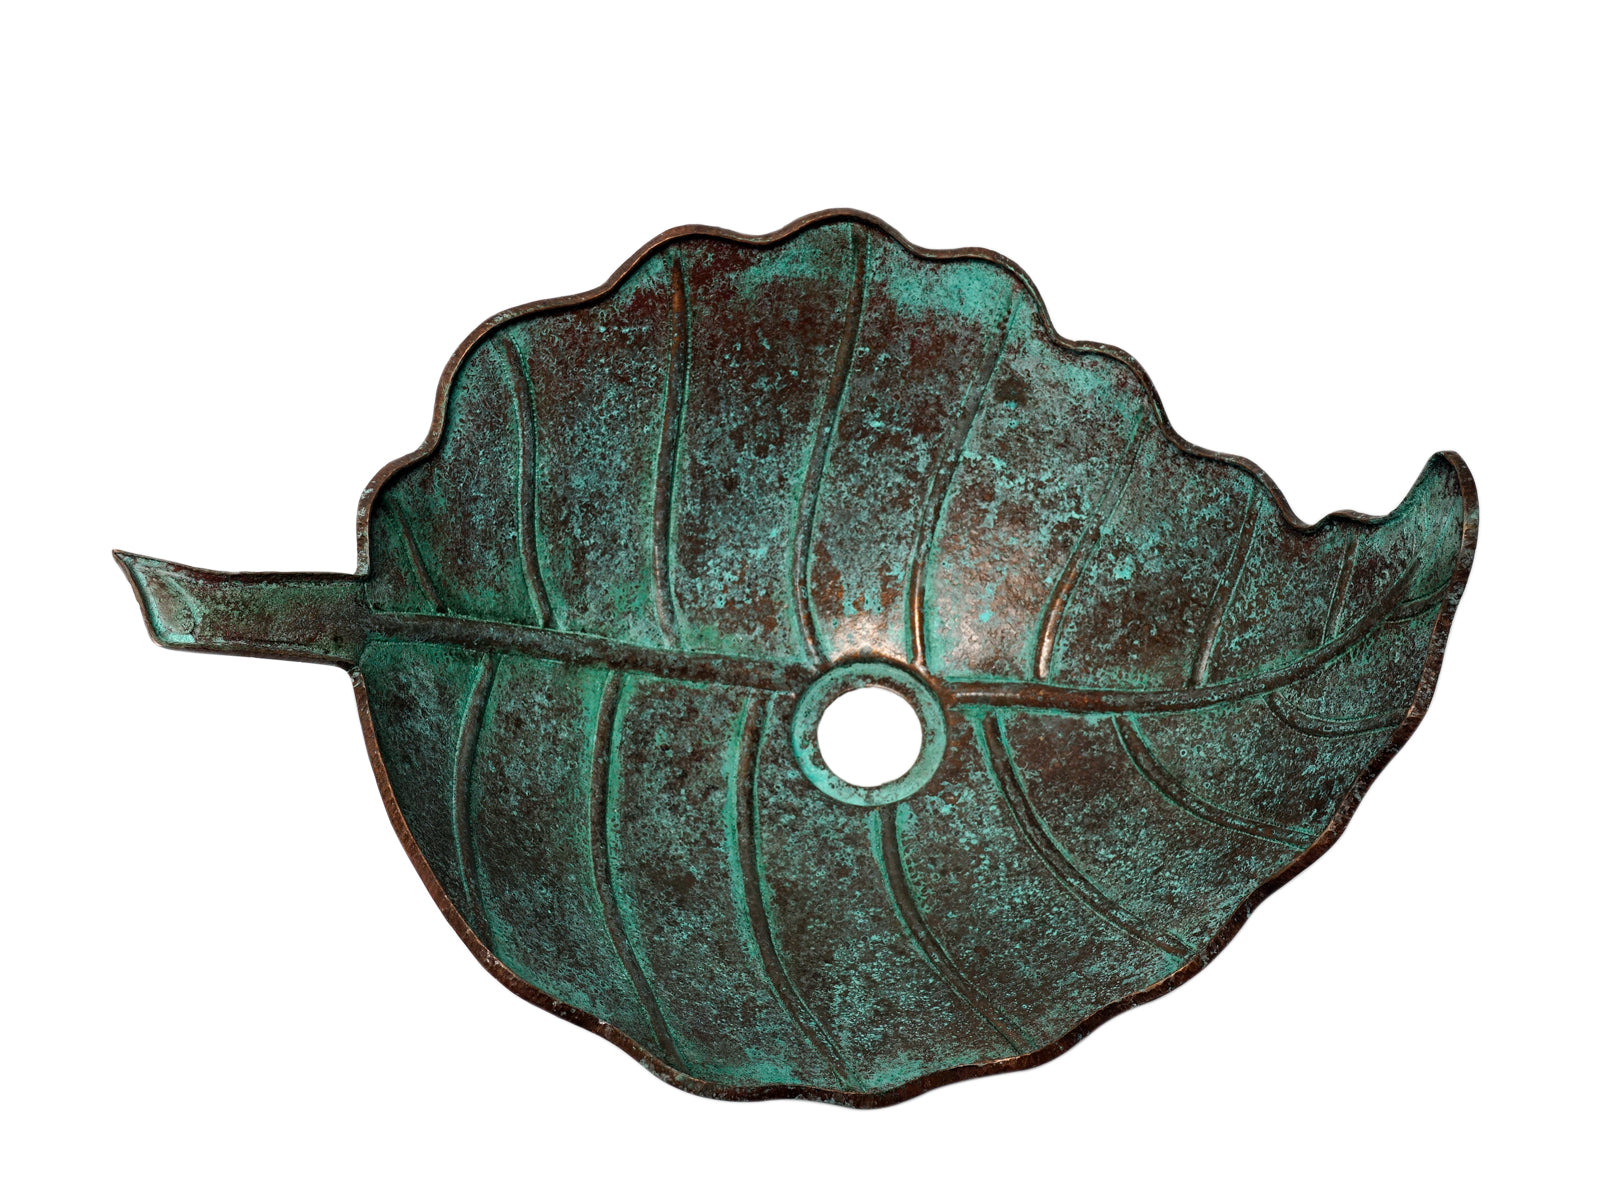 Copper Hammered Oak Leaf Vessel